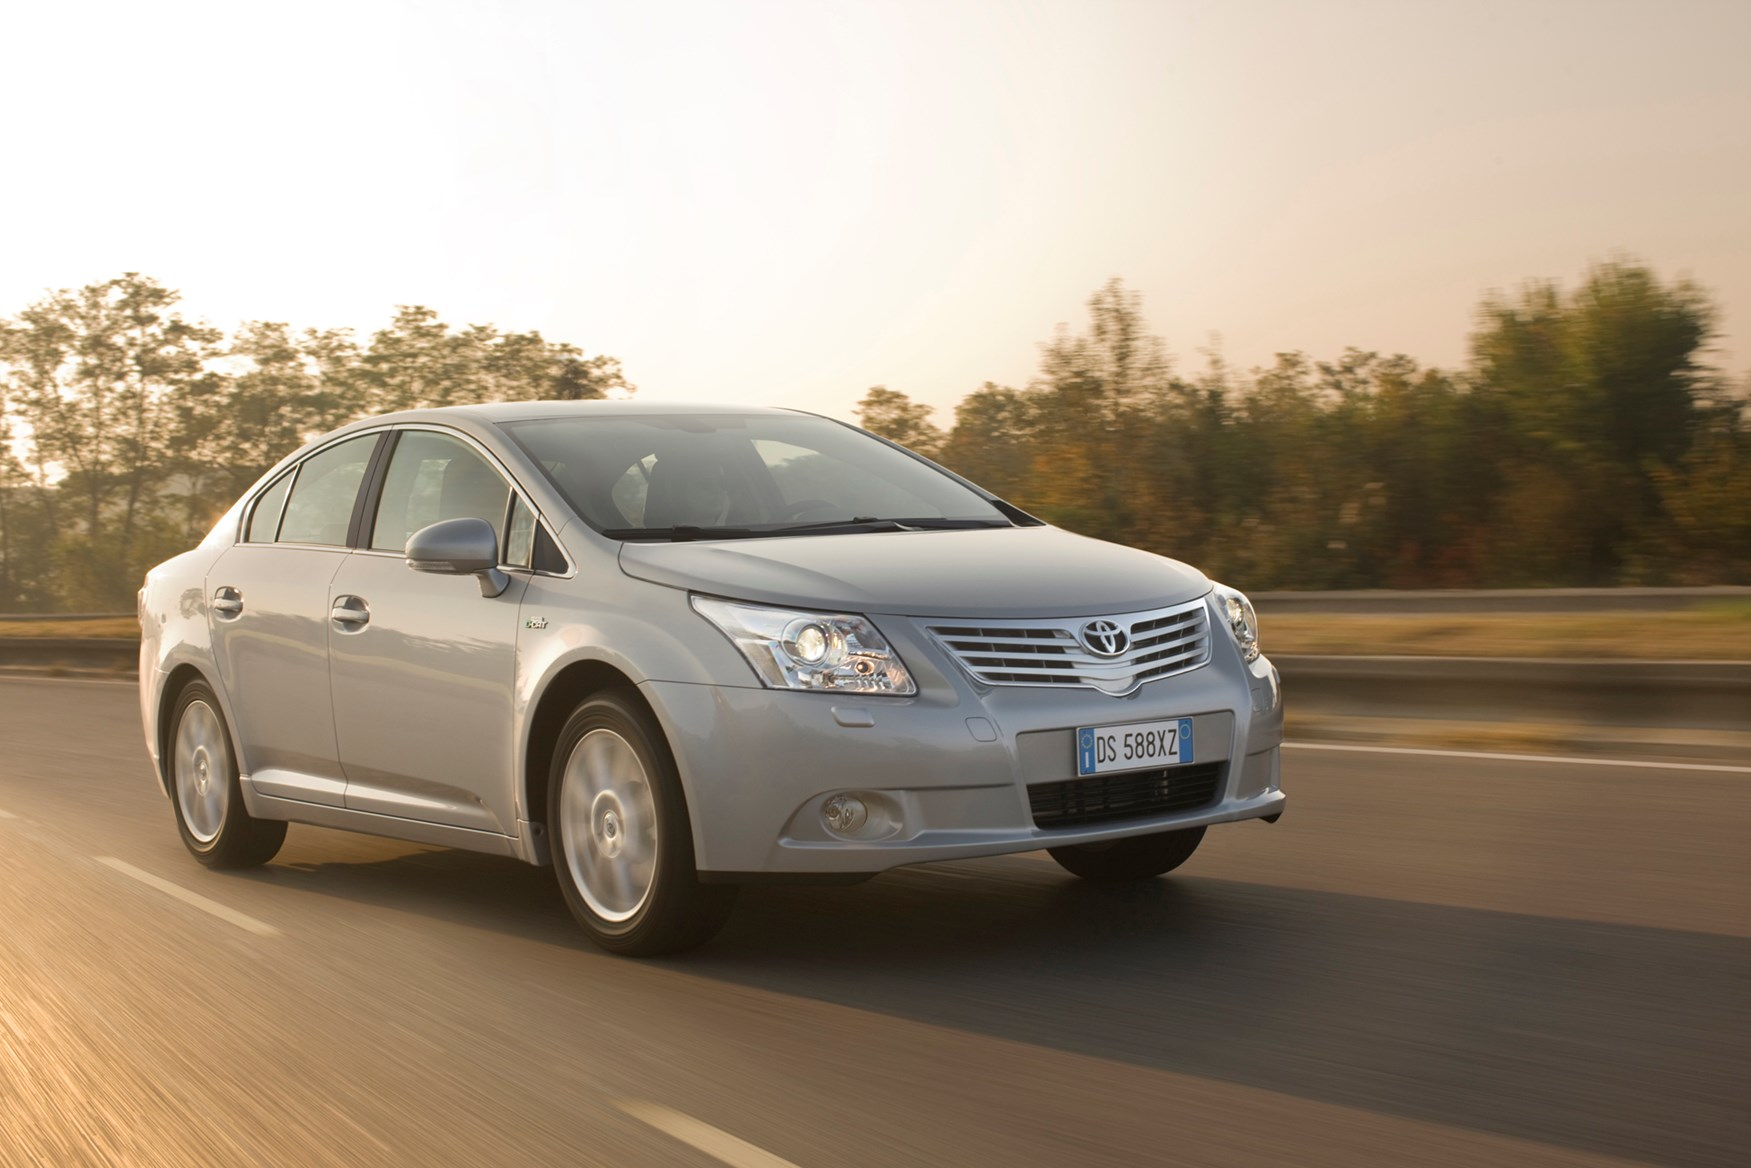 toyota avensis saloon review (2009 - ) | parkers